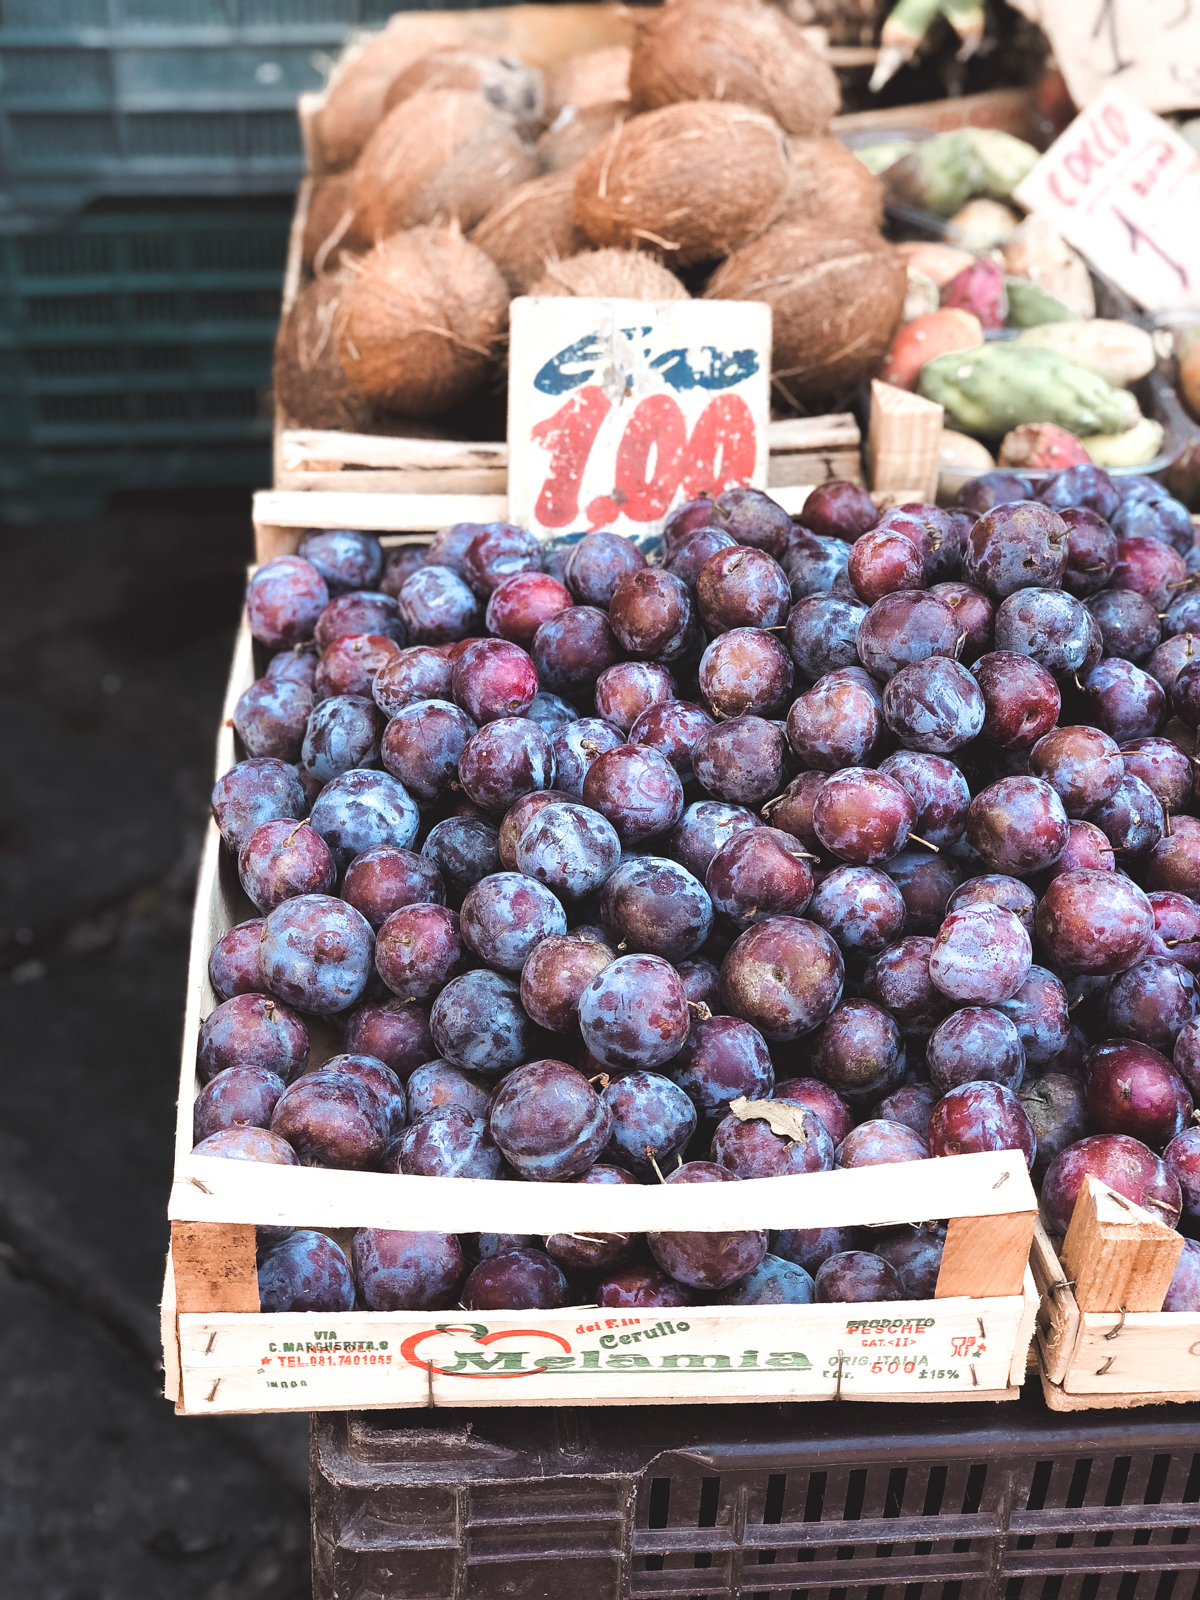 fresh fruit from a market in Naples